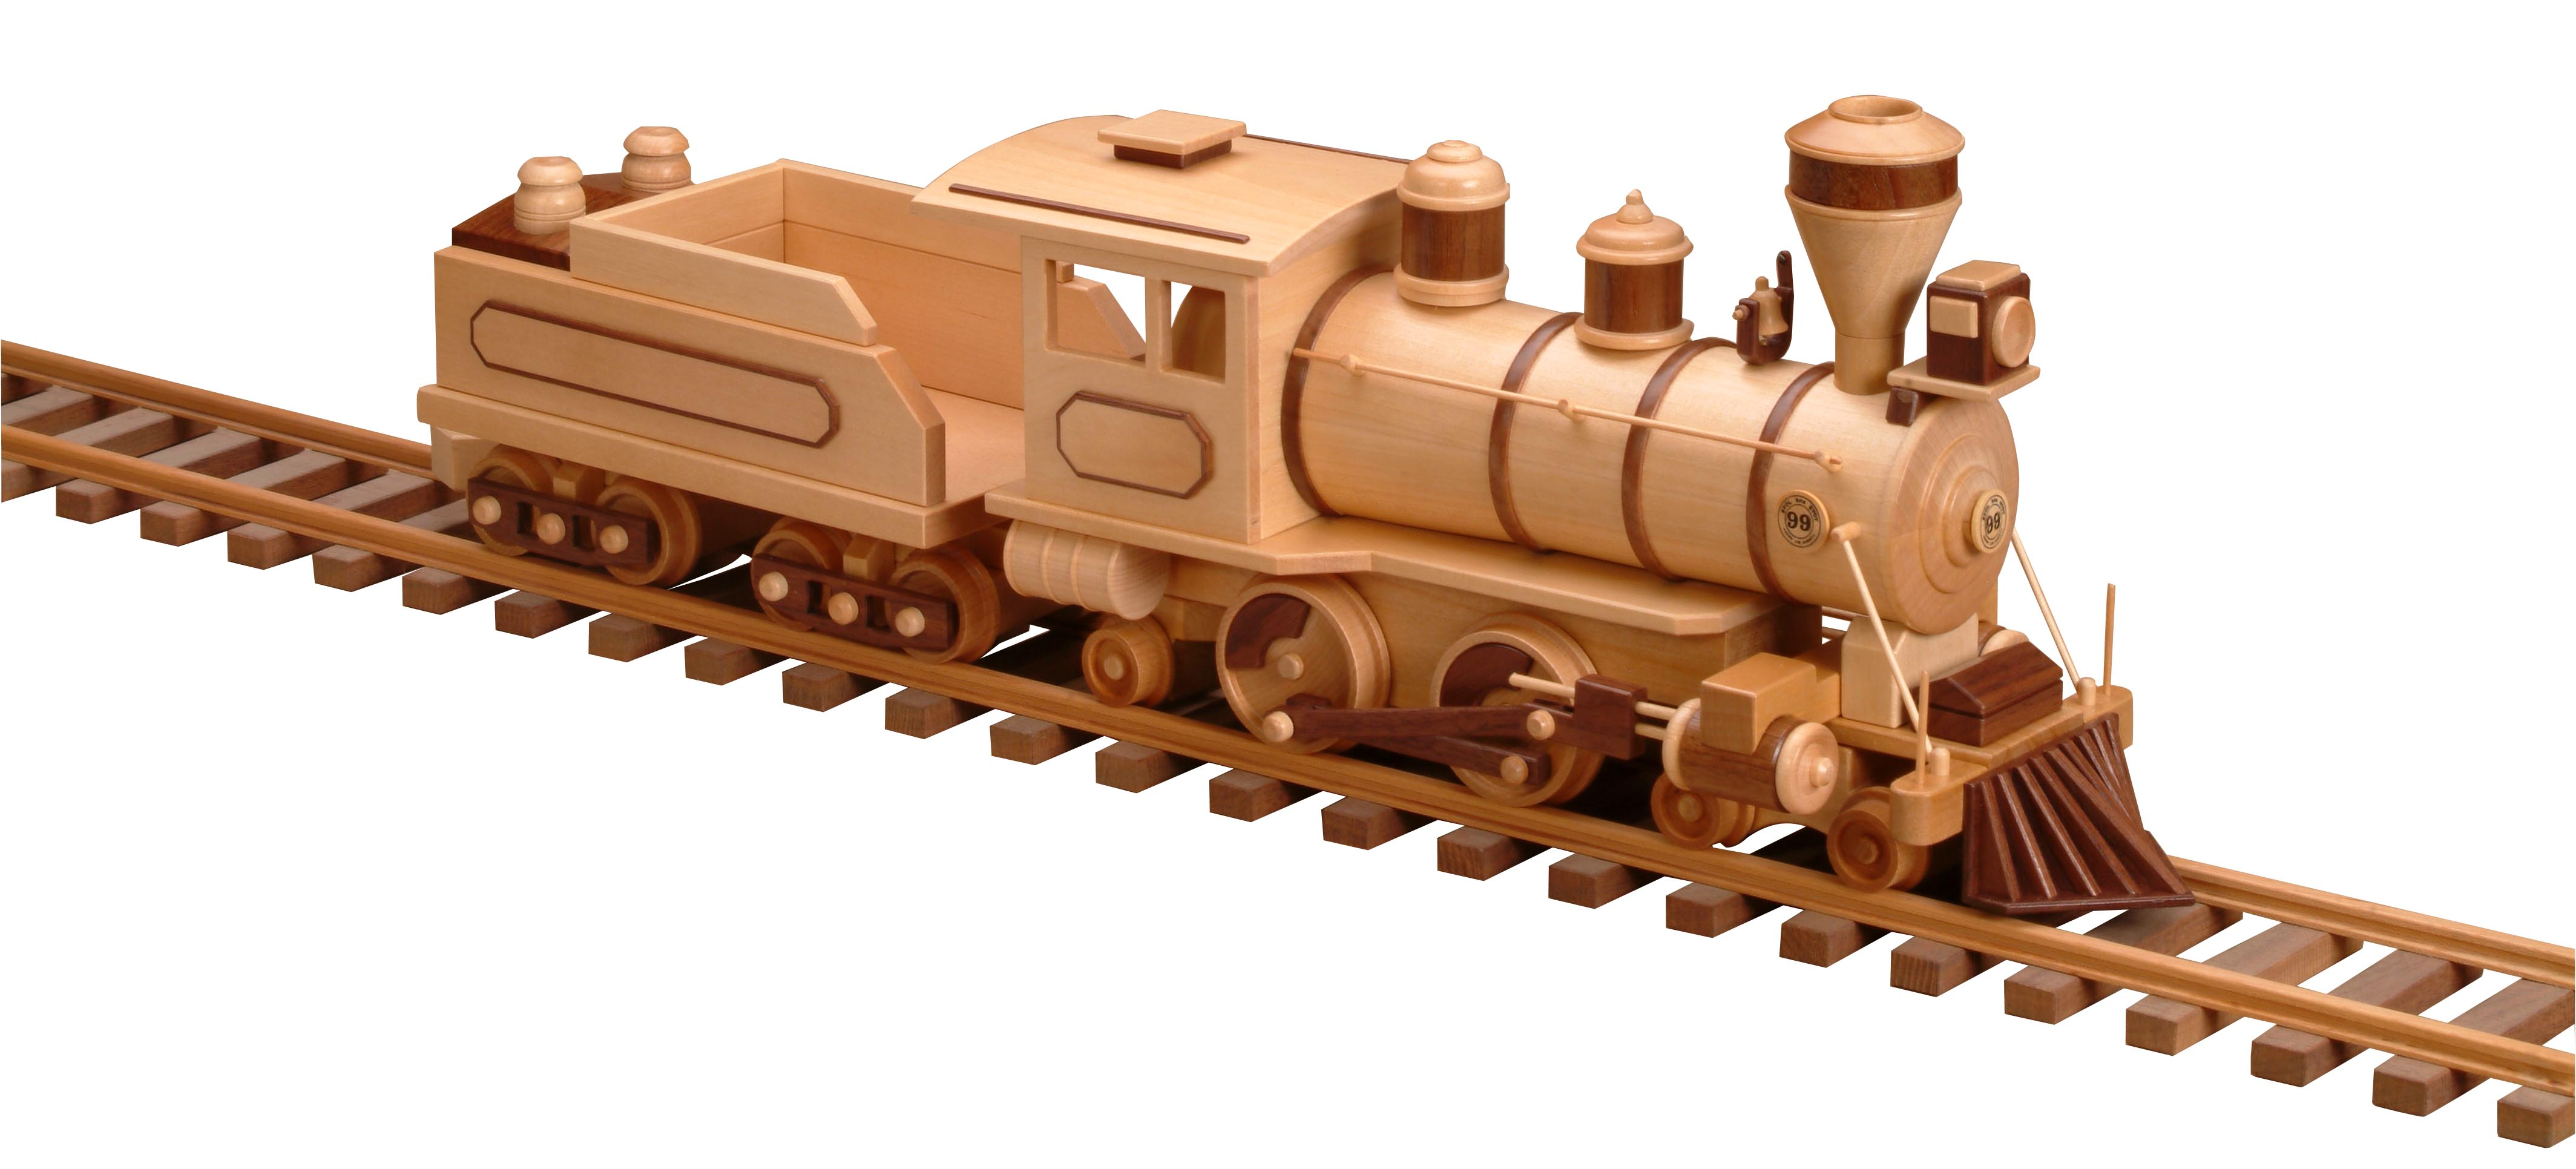 Wooden Toy Trains : Patterns kits trains locomotive tender